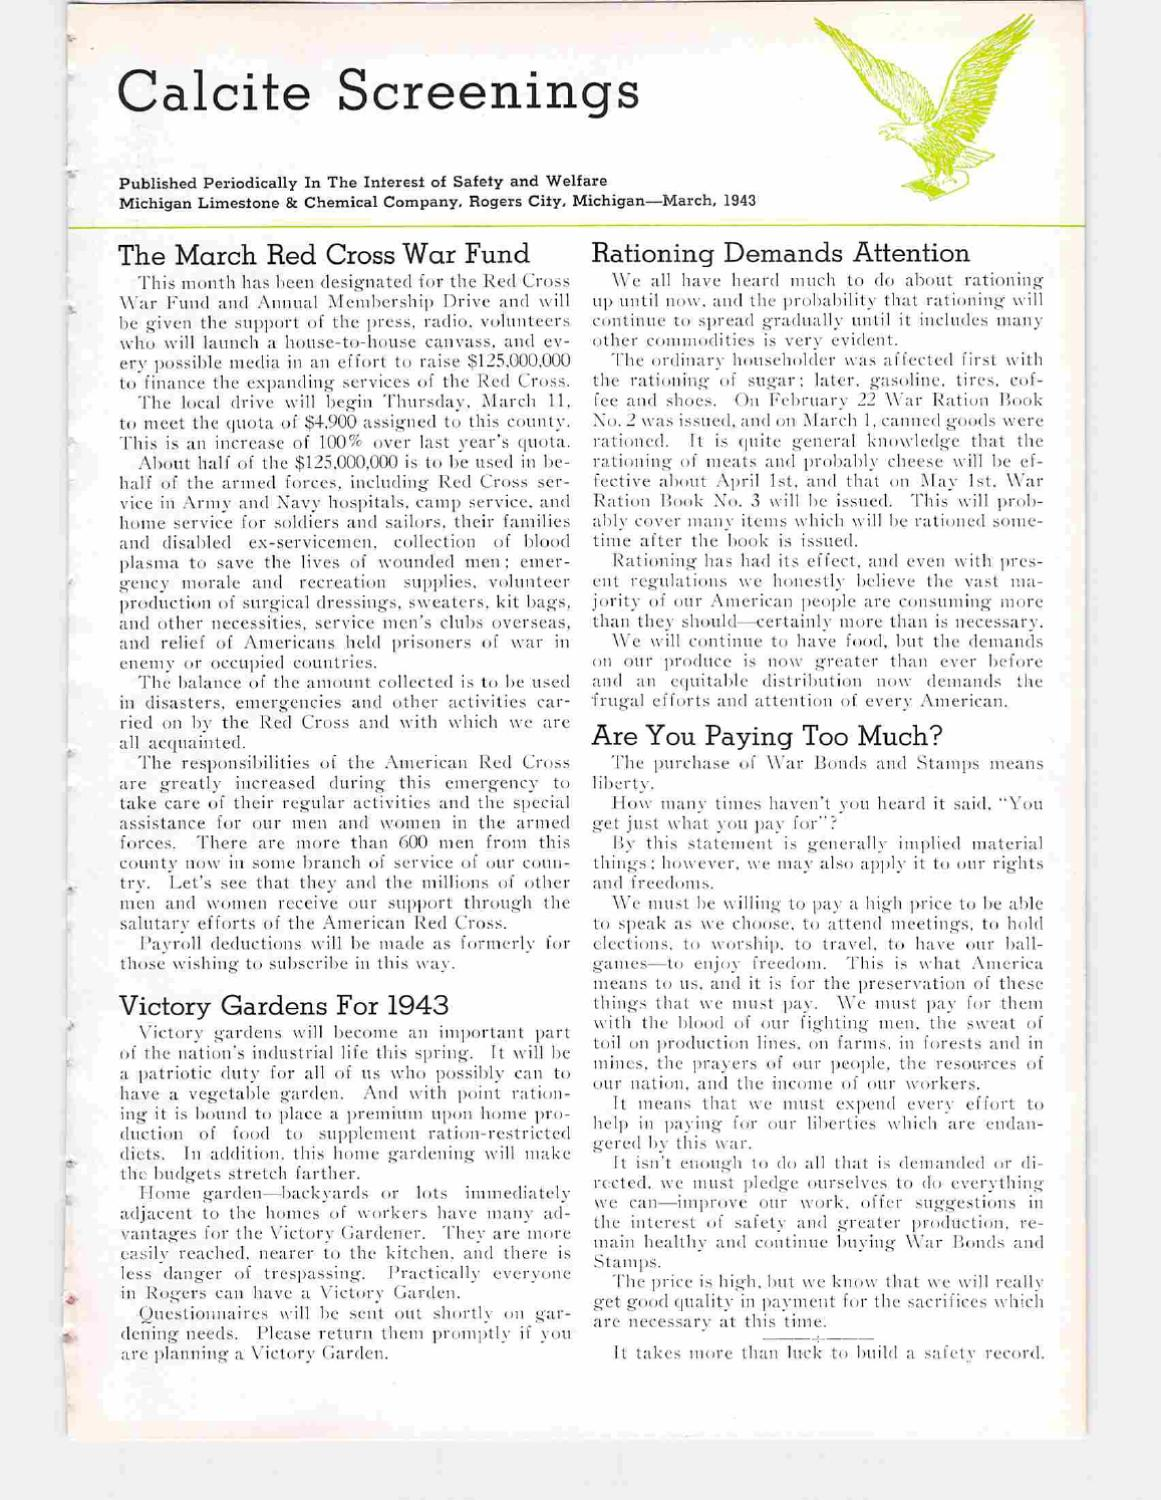 CALCITE SCREENINGS 1943 By Presque Isle County Historical Museum Issuu